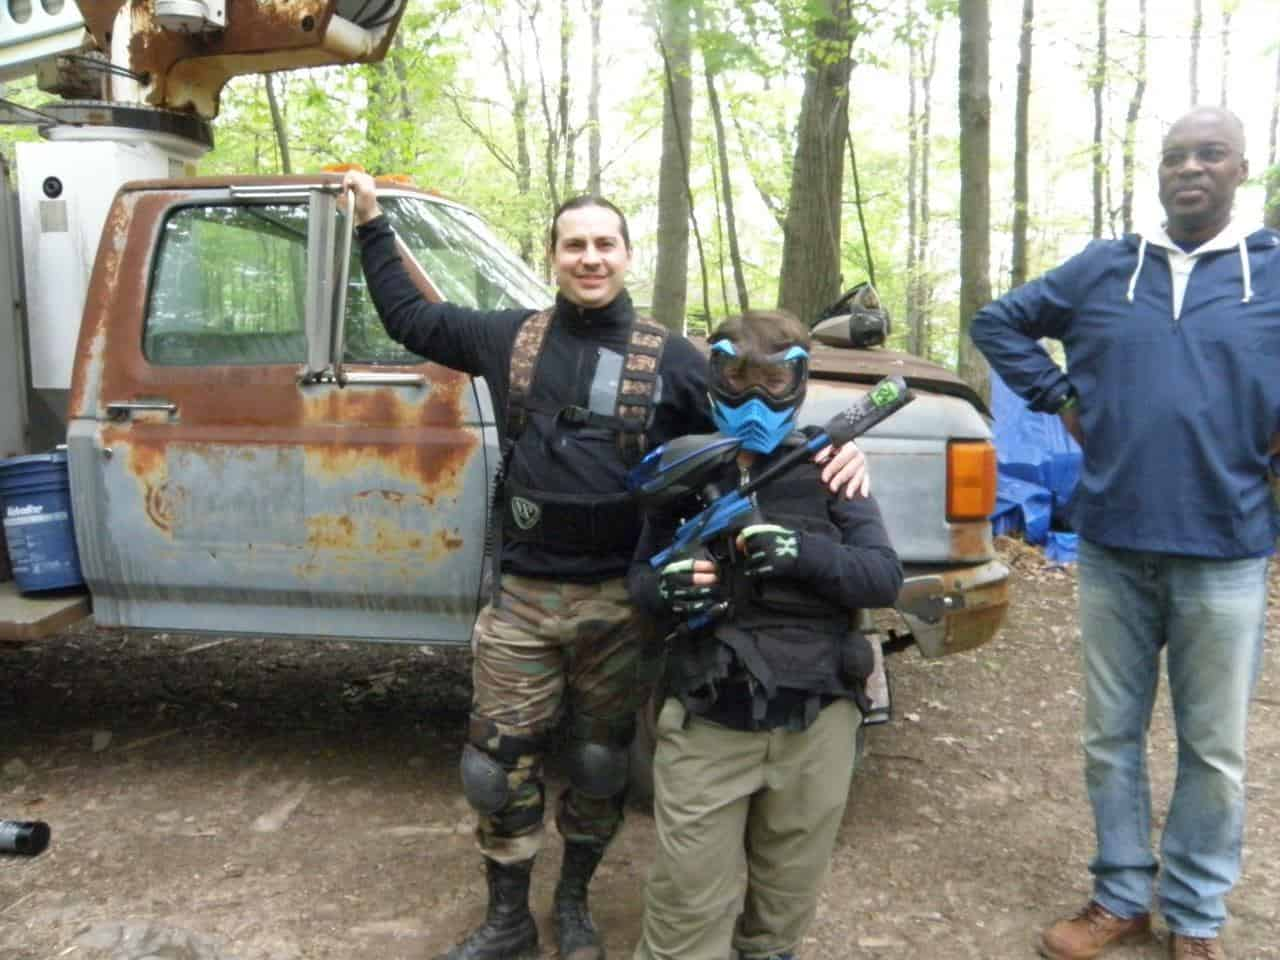 Three men in paintball gear